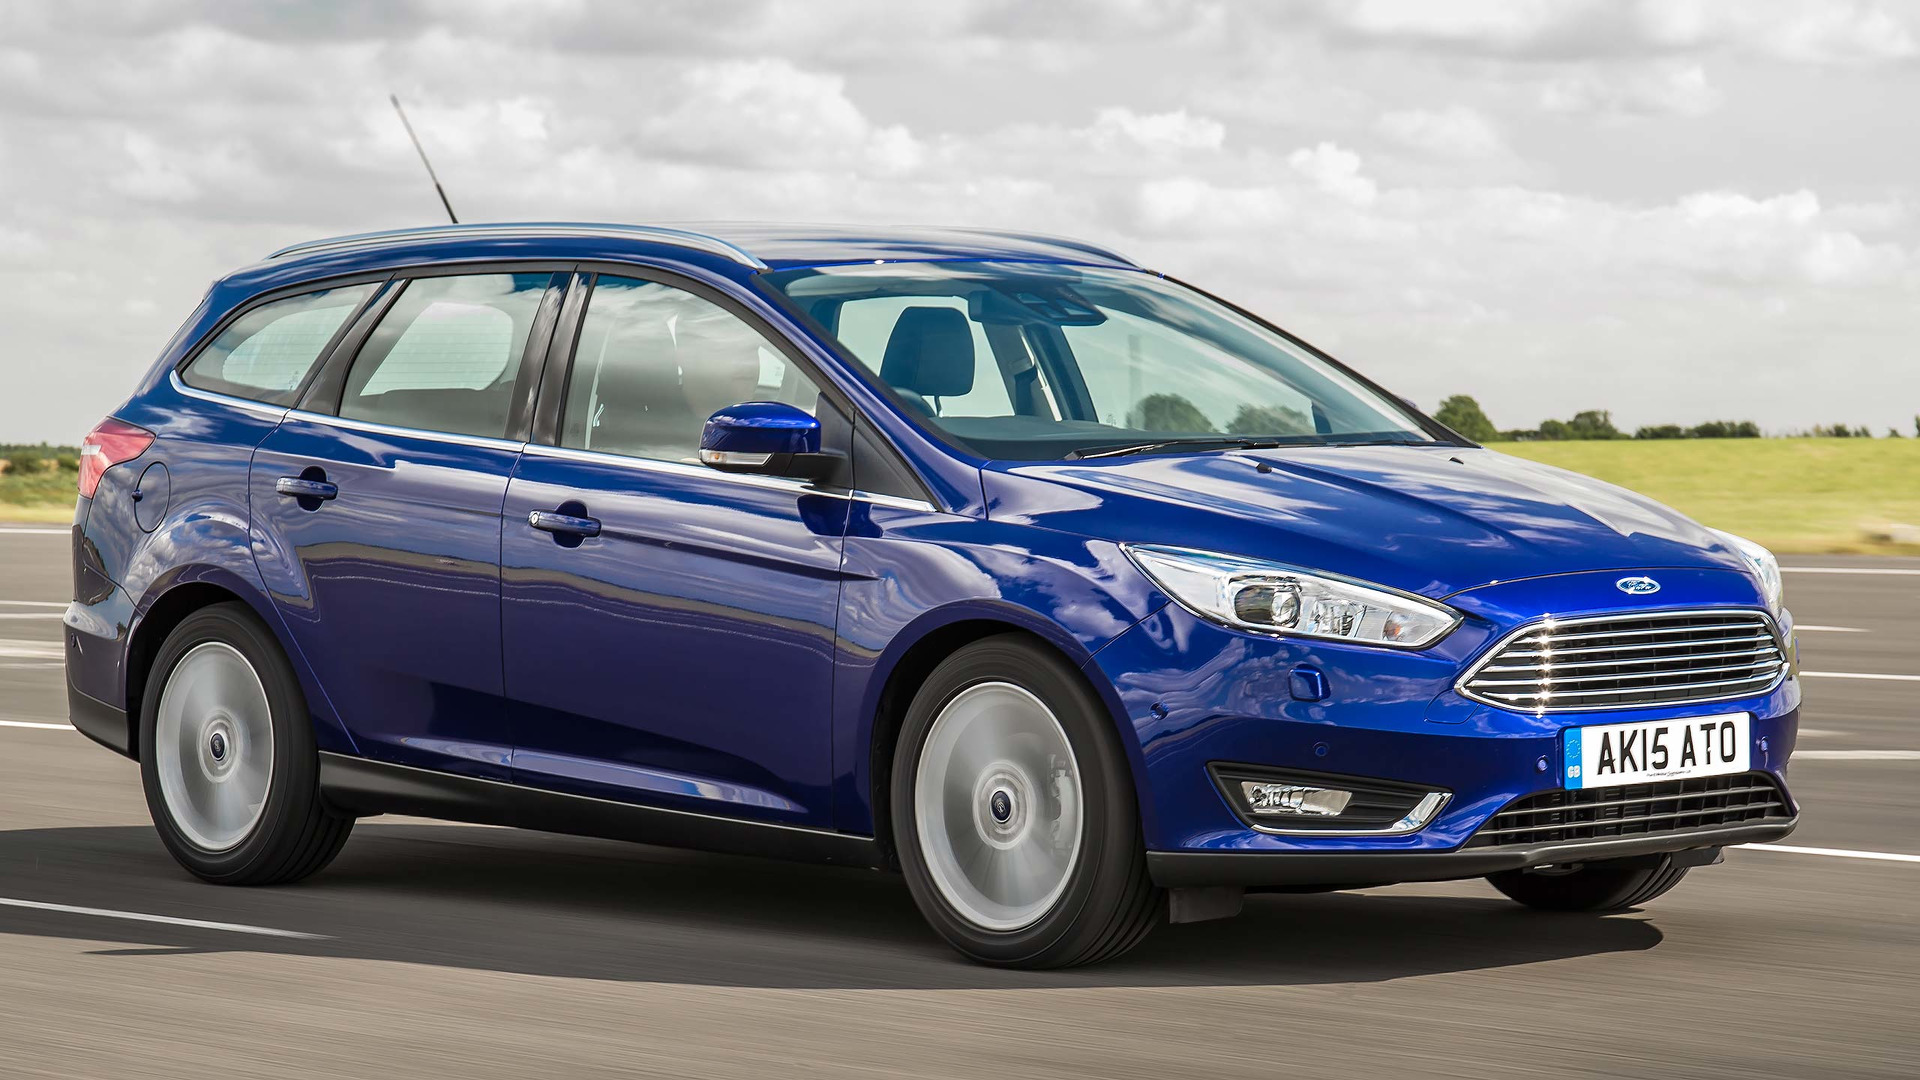 New Cars 2018 >> Ford Focus Estate News and Reviews | Motor1.com UK